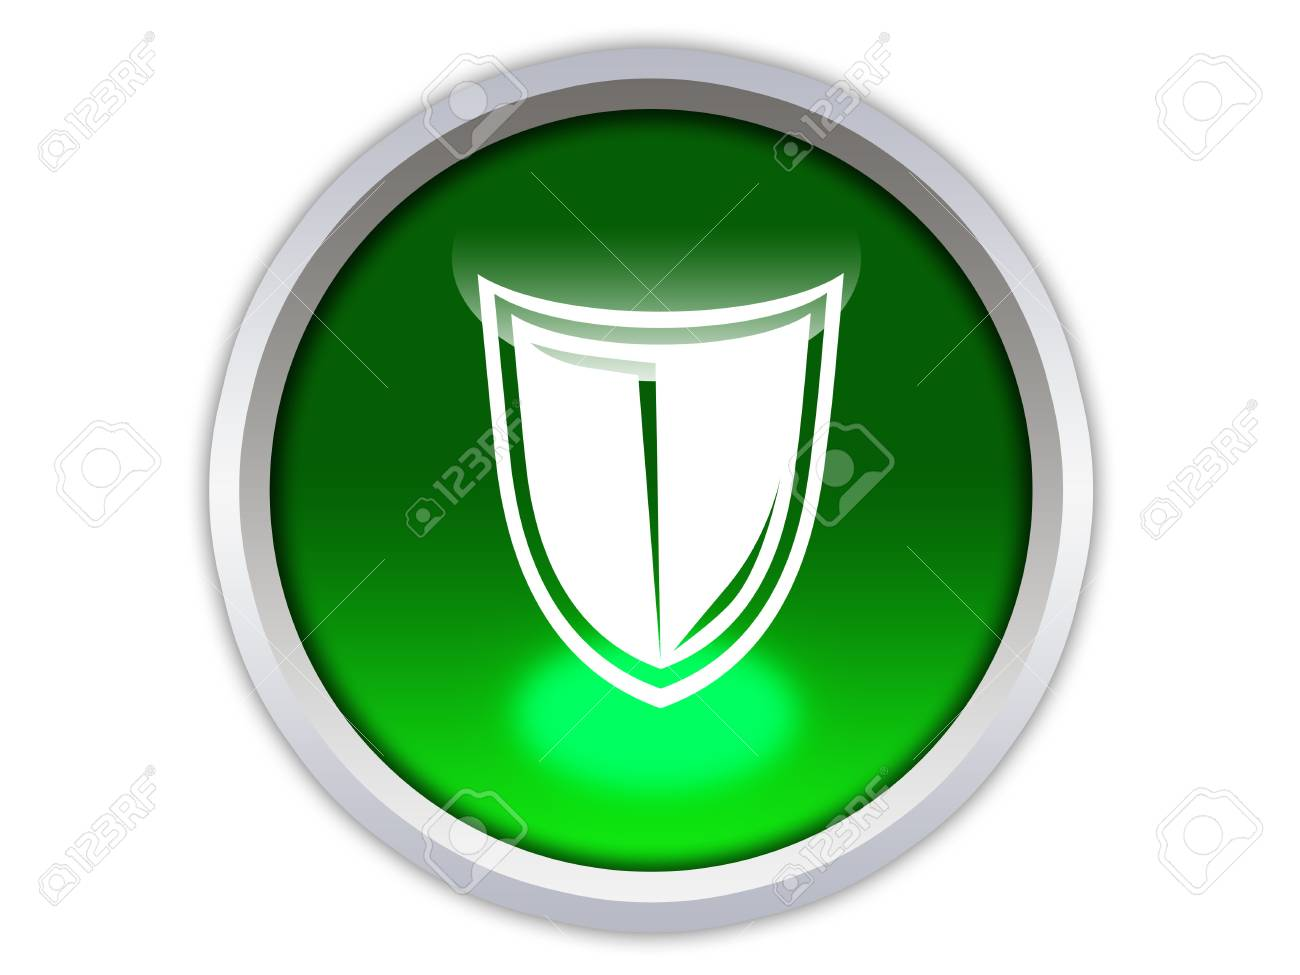 protection symbol on green glossy button isolated over white background Stock Photo - 12603151